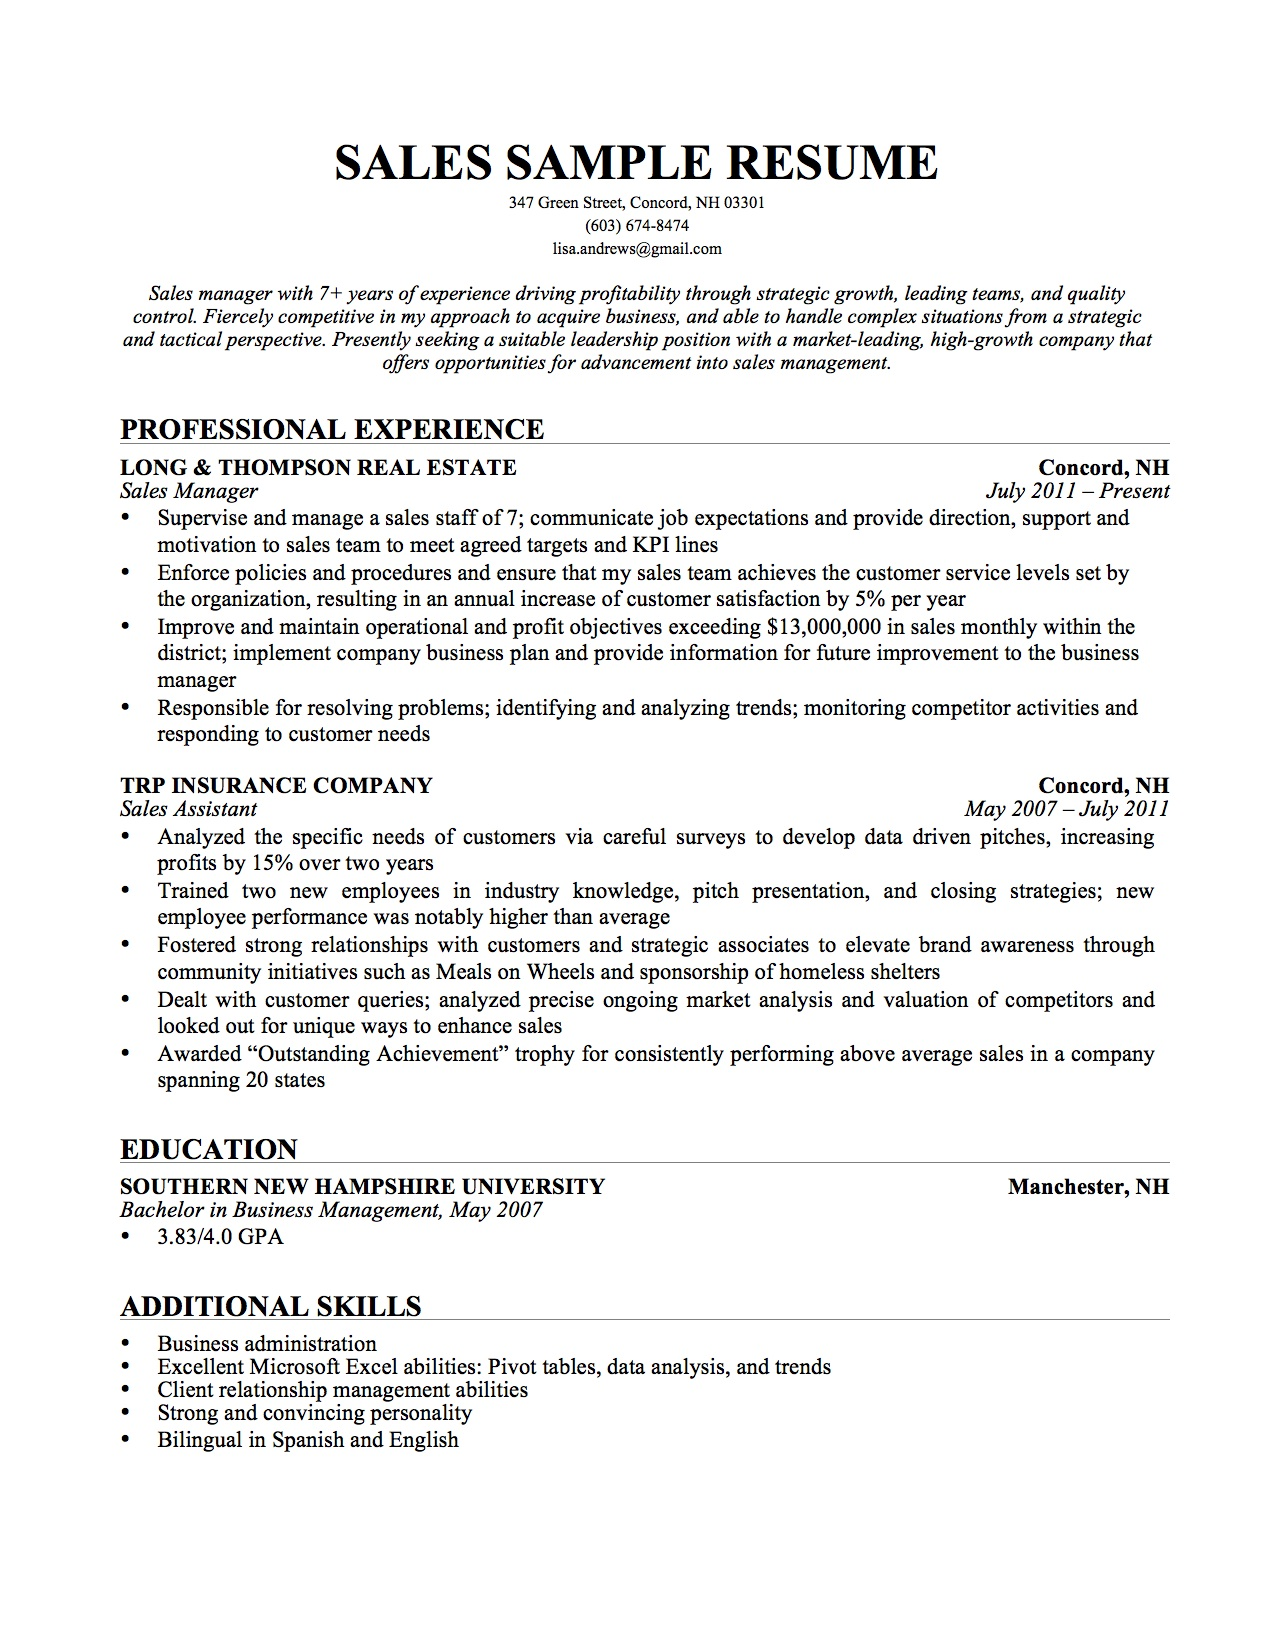 Free Resume Templates   For First Job Samples Skills In Inside        WordPress com